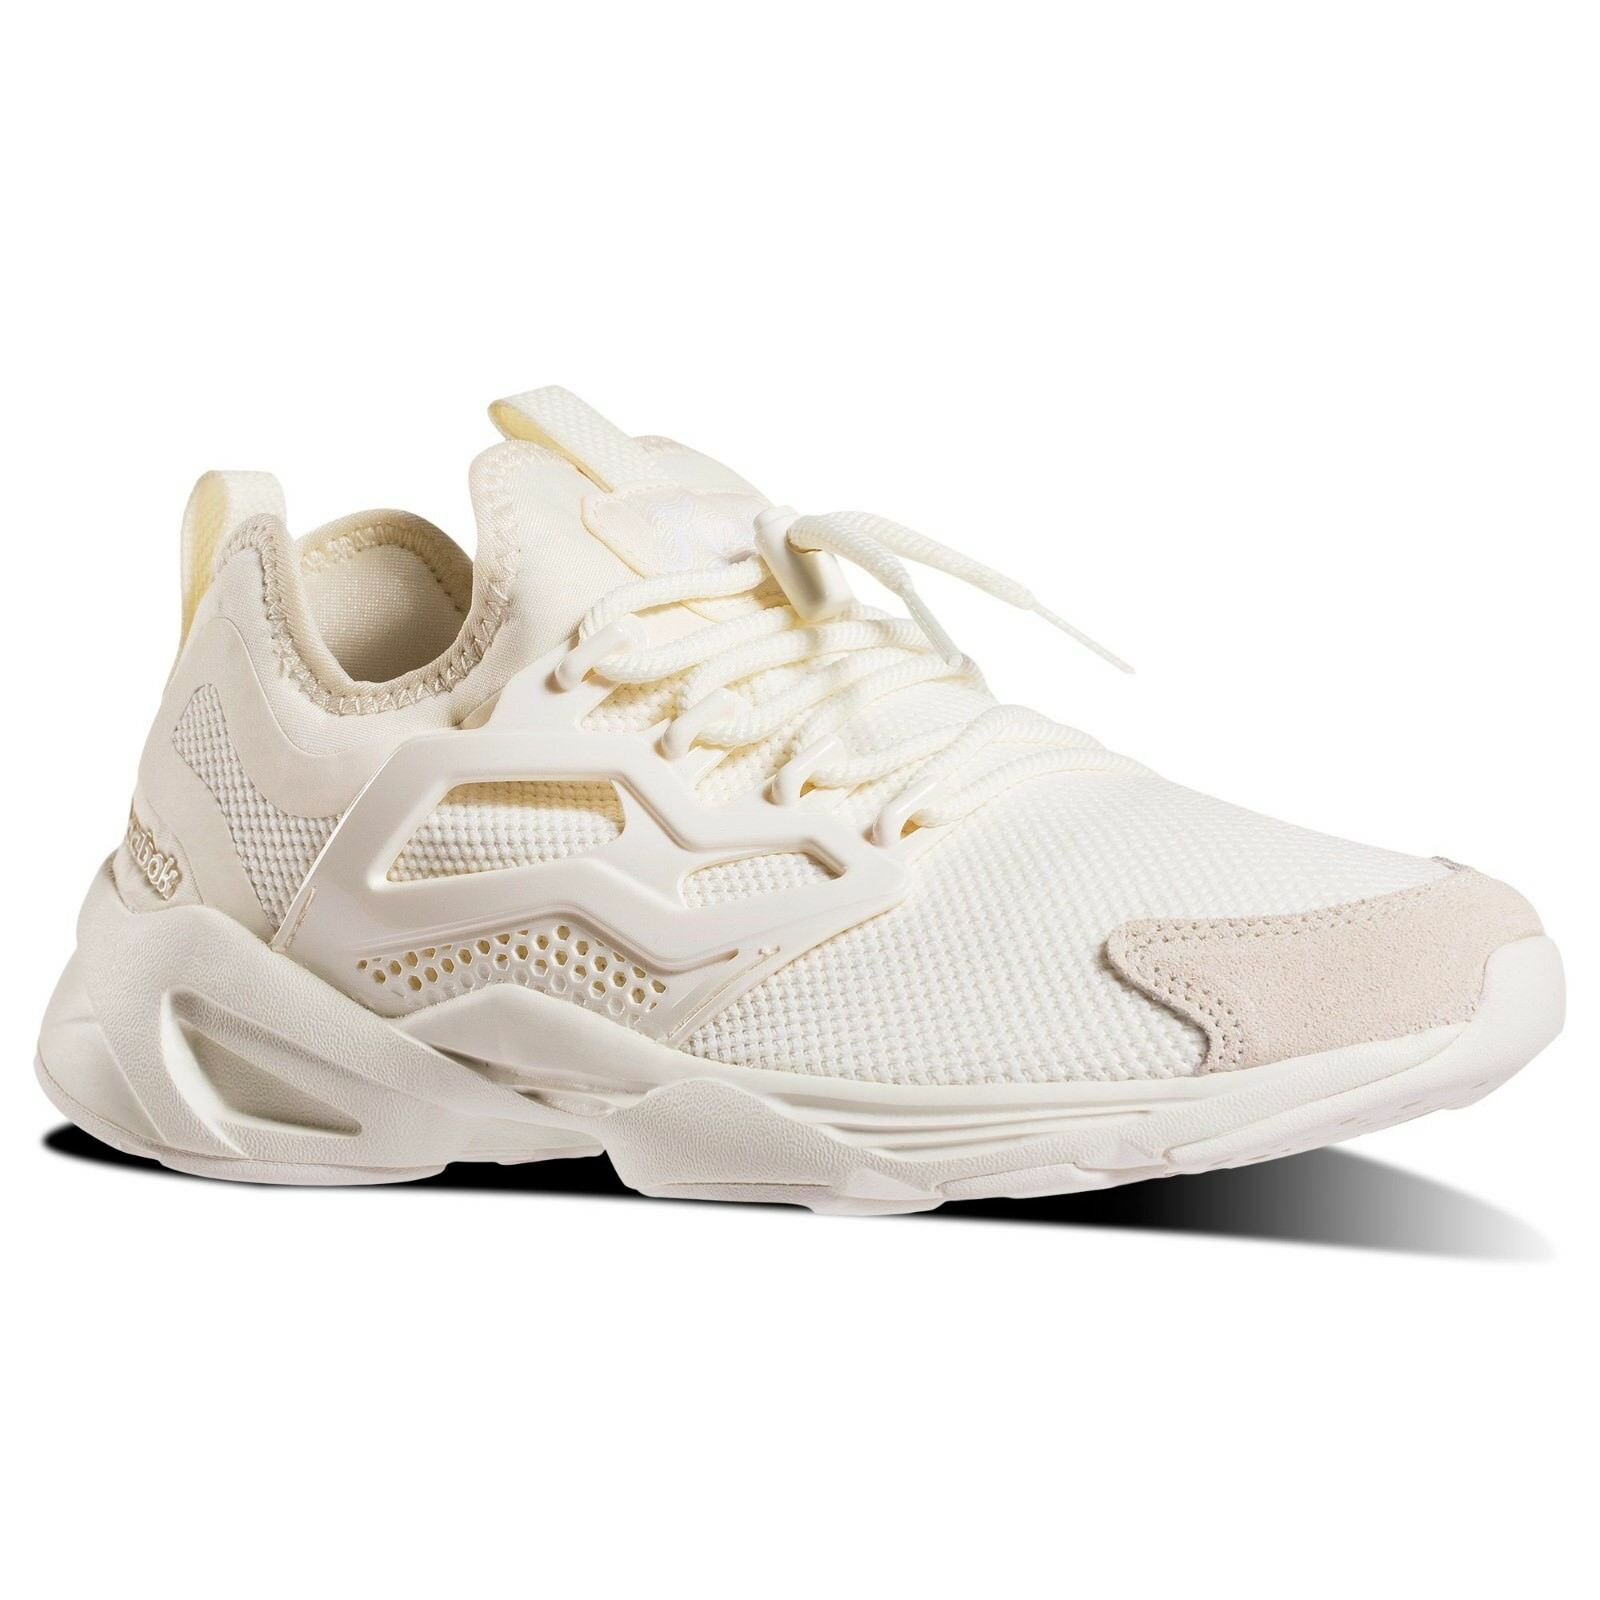 Reebok Damenschuhe Fury Adapt Trainers Wei  - Gr  e UK 6